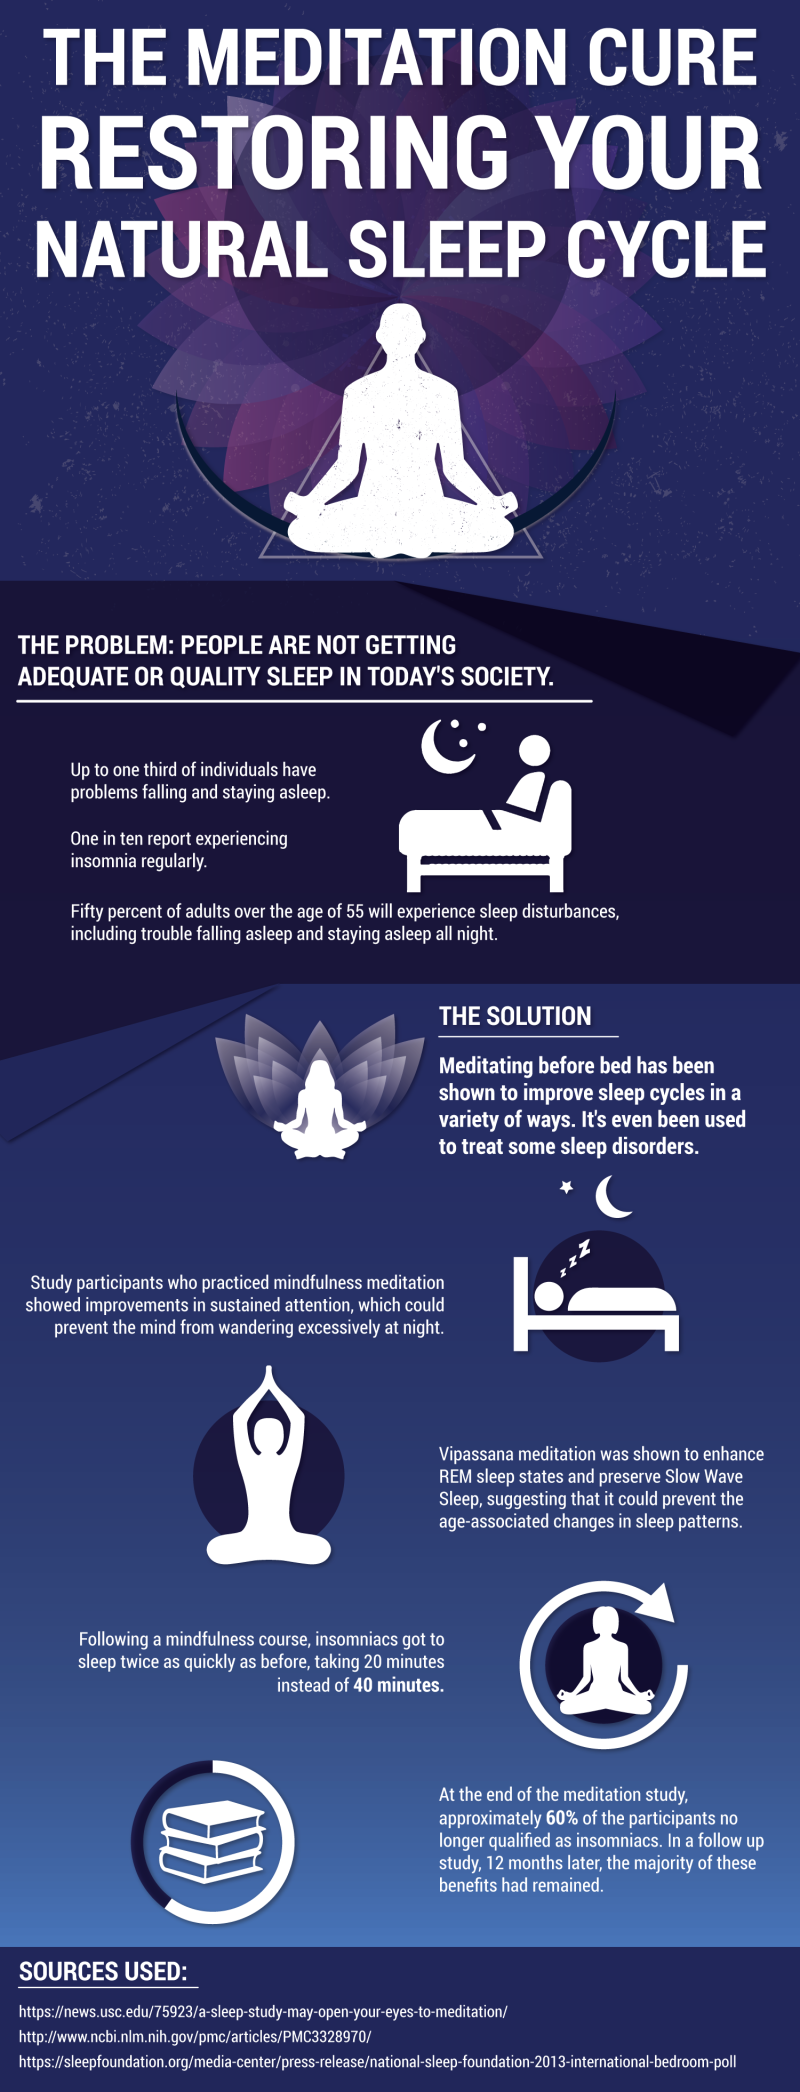 Supercharge Your Sleep by Meditating Before Bed